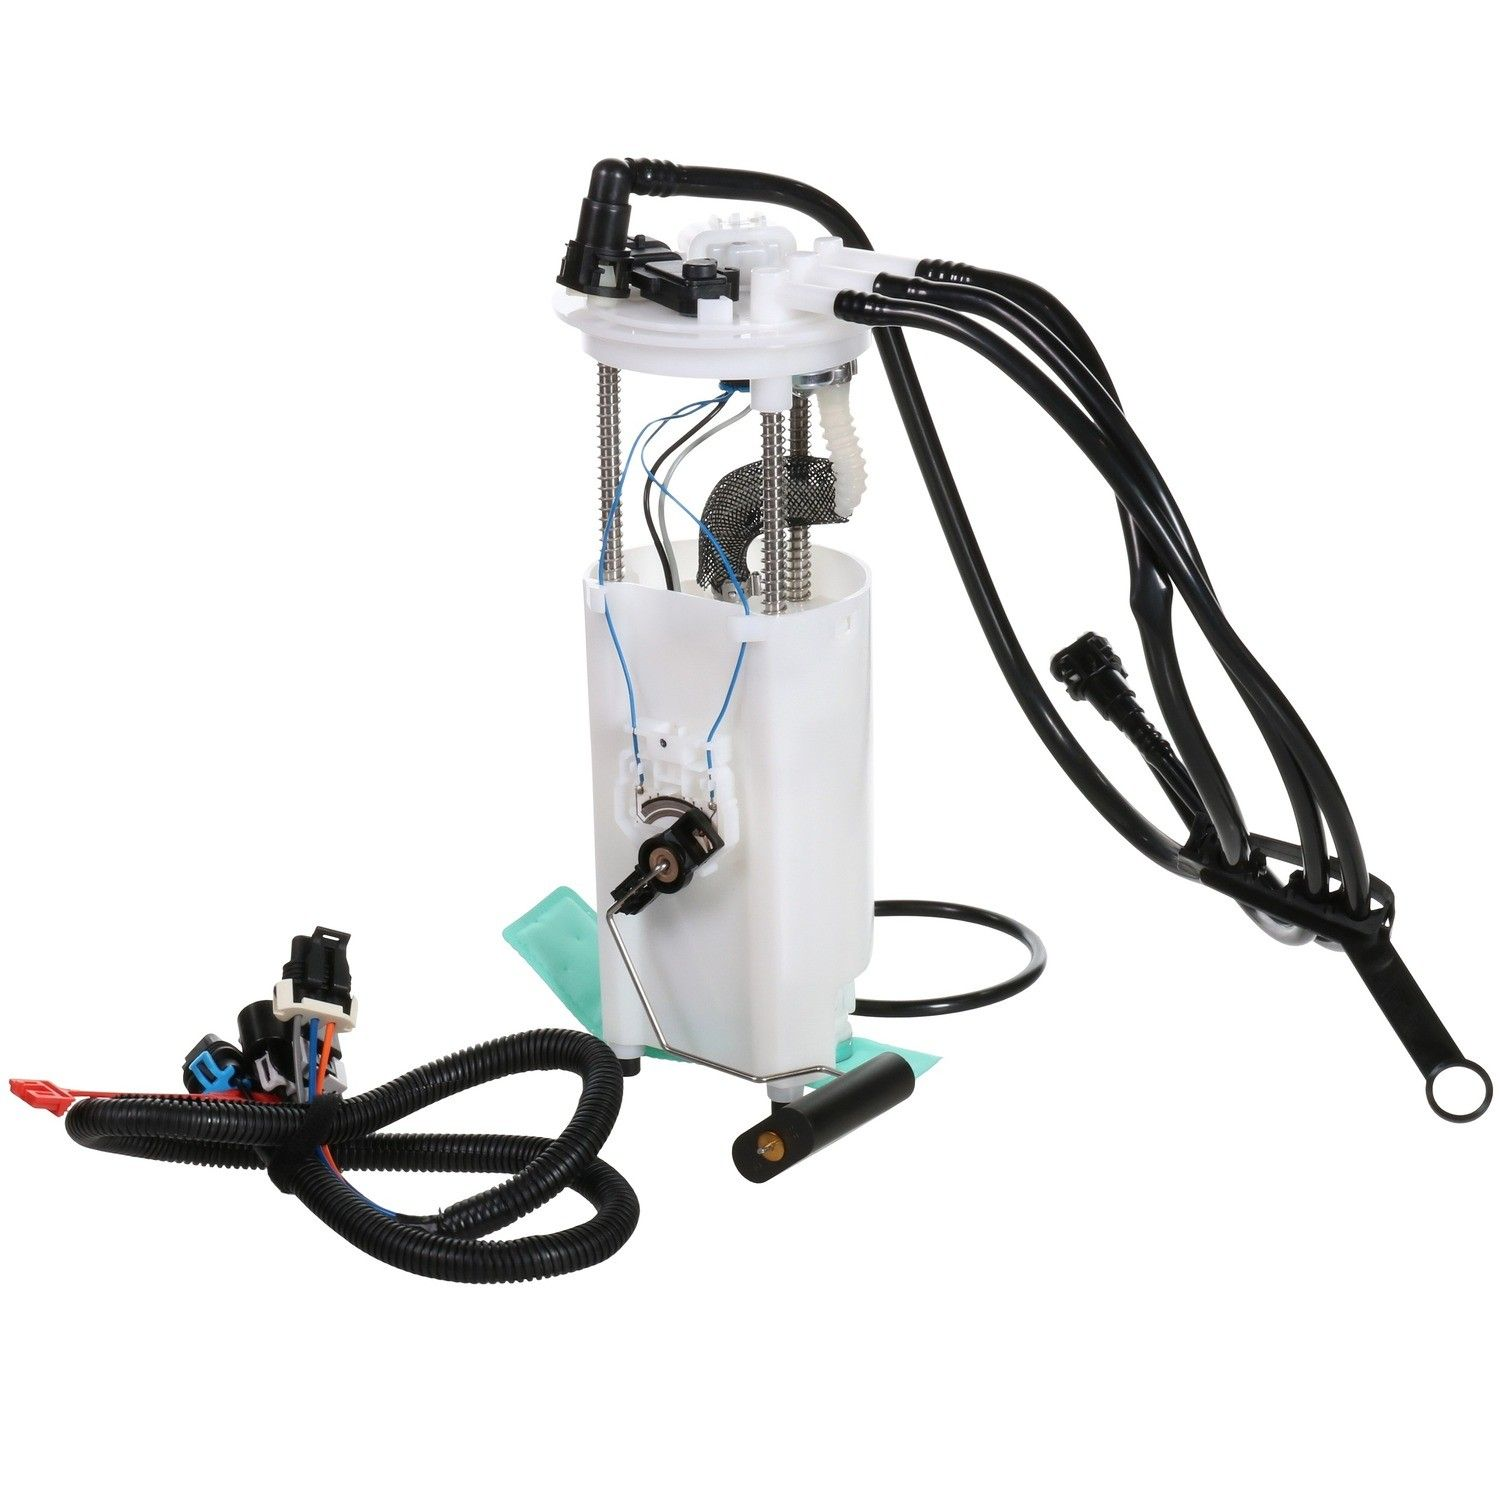 Chevrolet Cavalier Fuel Pump Module Assembly Replacement Acdelco 1930 Model A Wiring Harness Includes Sending Unit Float Reservoir Strainer Upgraded And Tank Seal Included